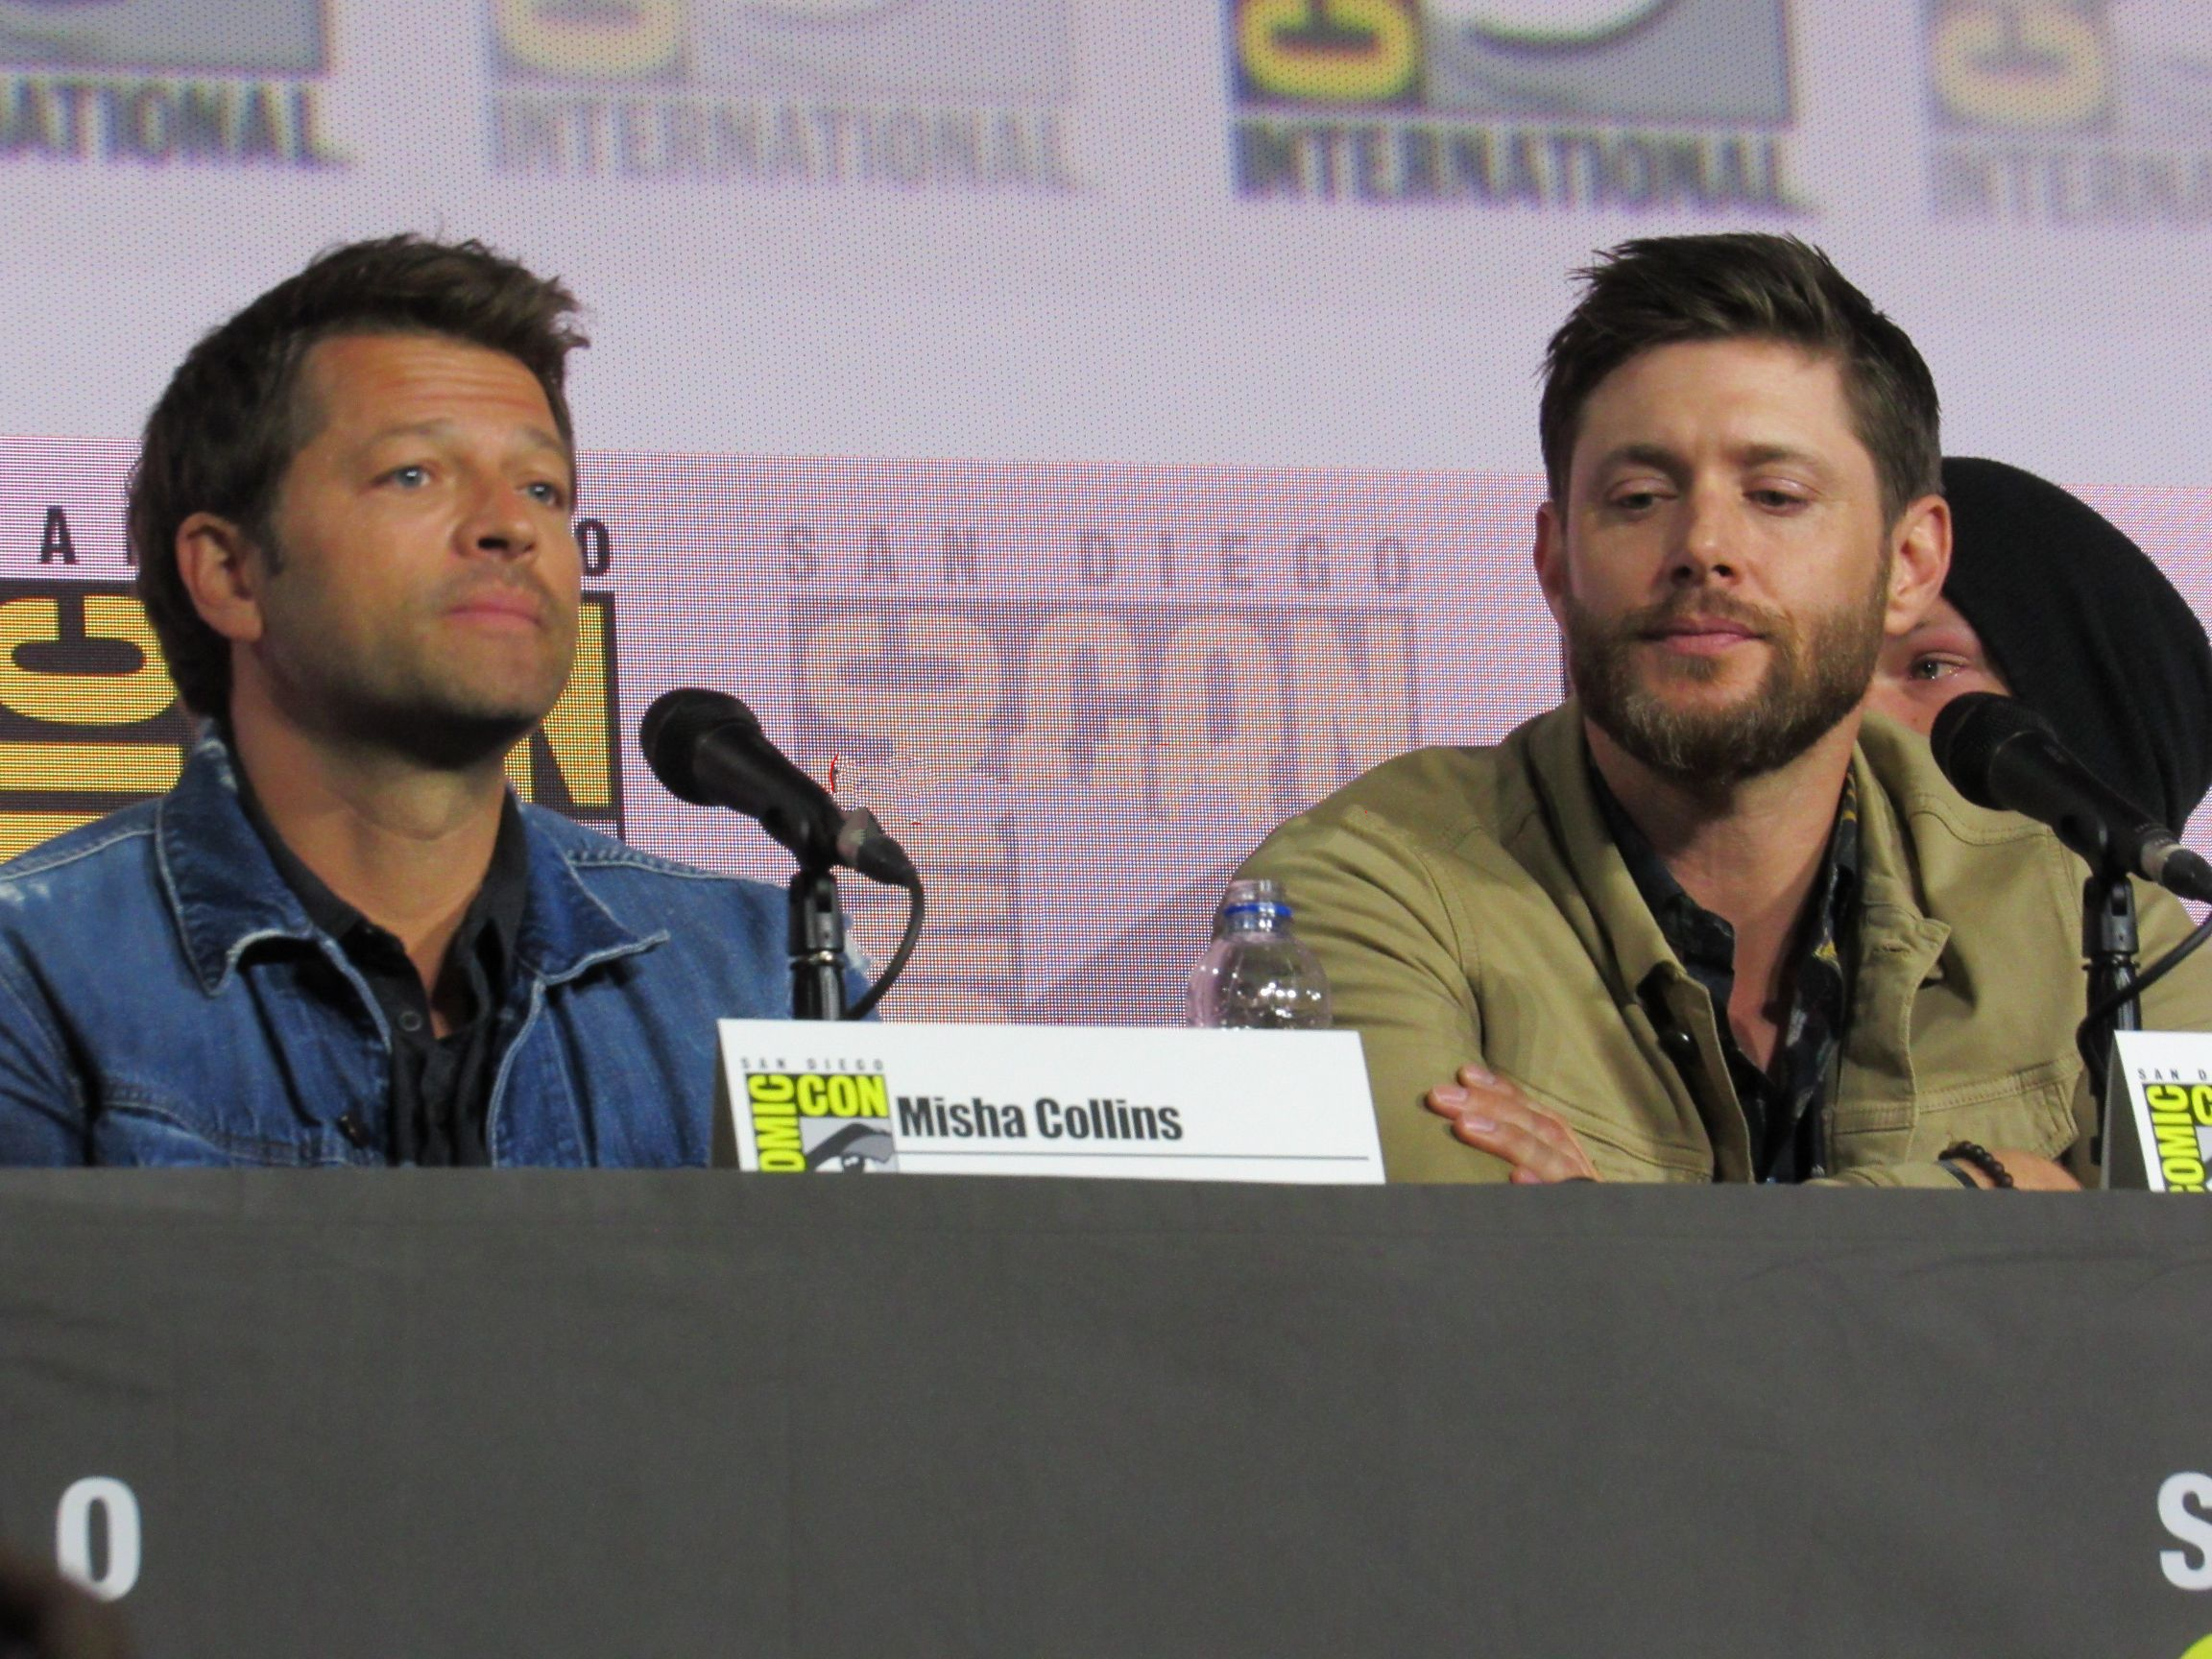 Jensen Ackles comforting emotional Misha Collins at SPN Comic Con 2019